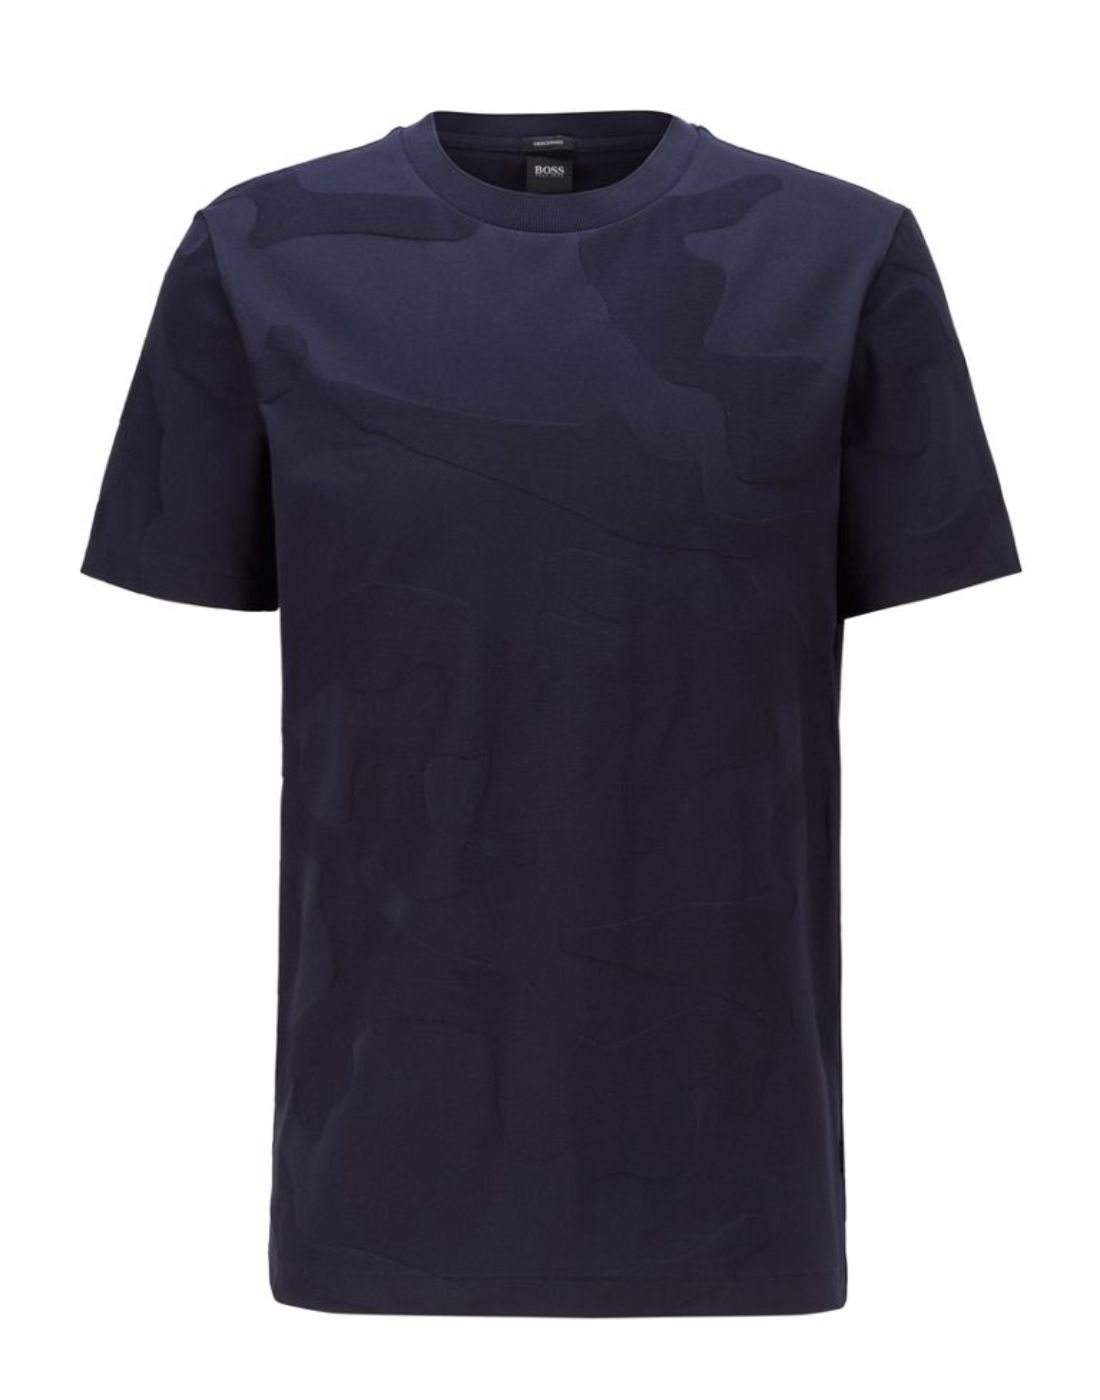 hugo boss navy t shirt